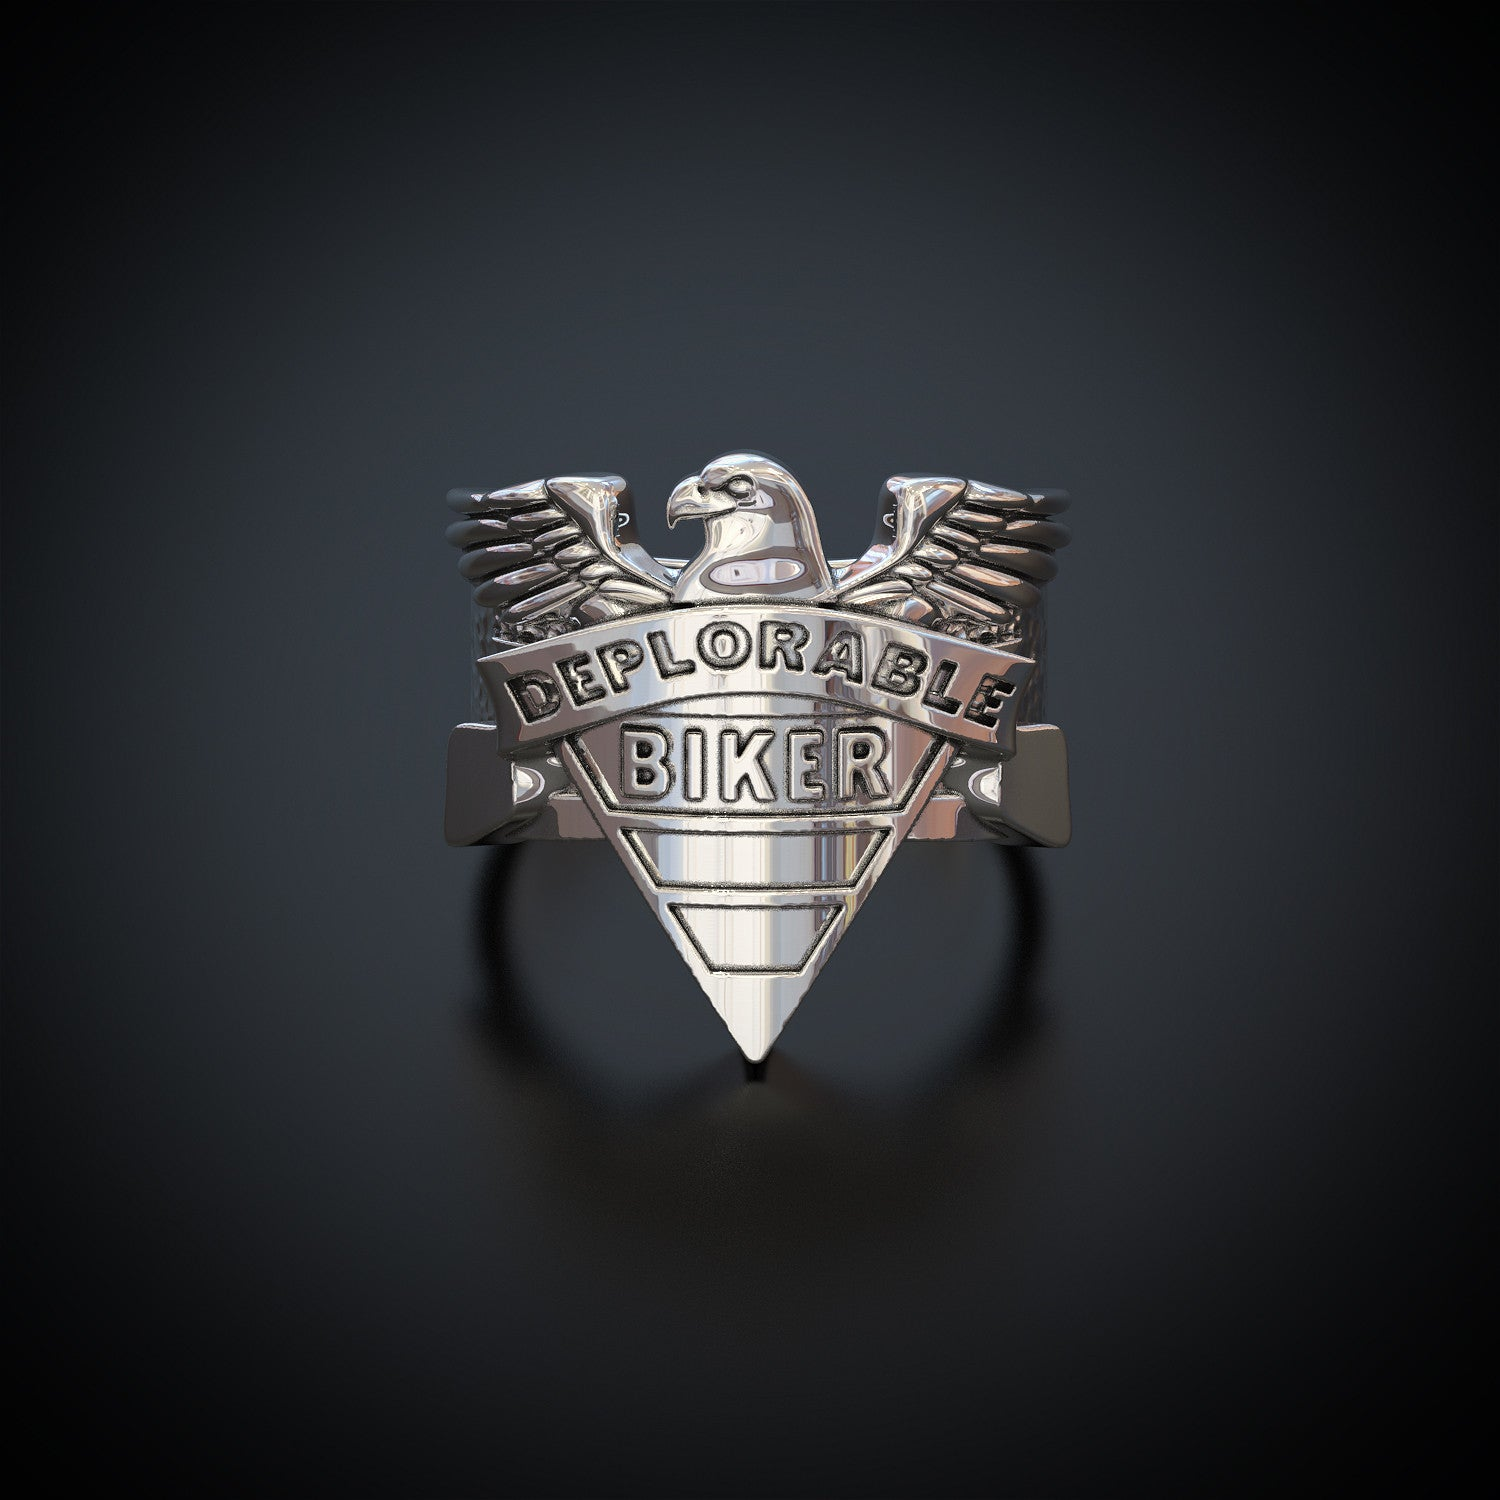 Deplorable Biker Ring